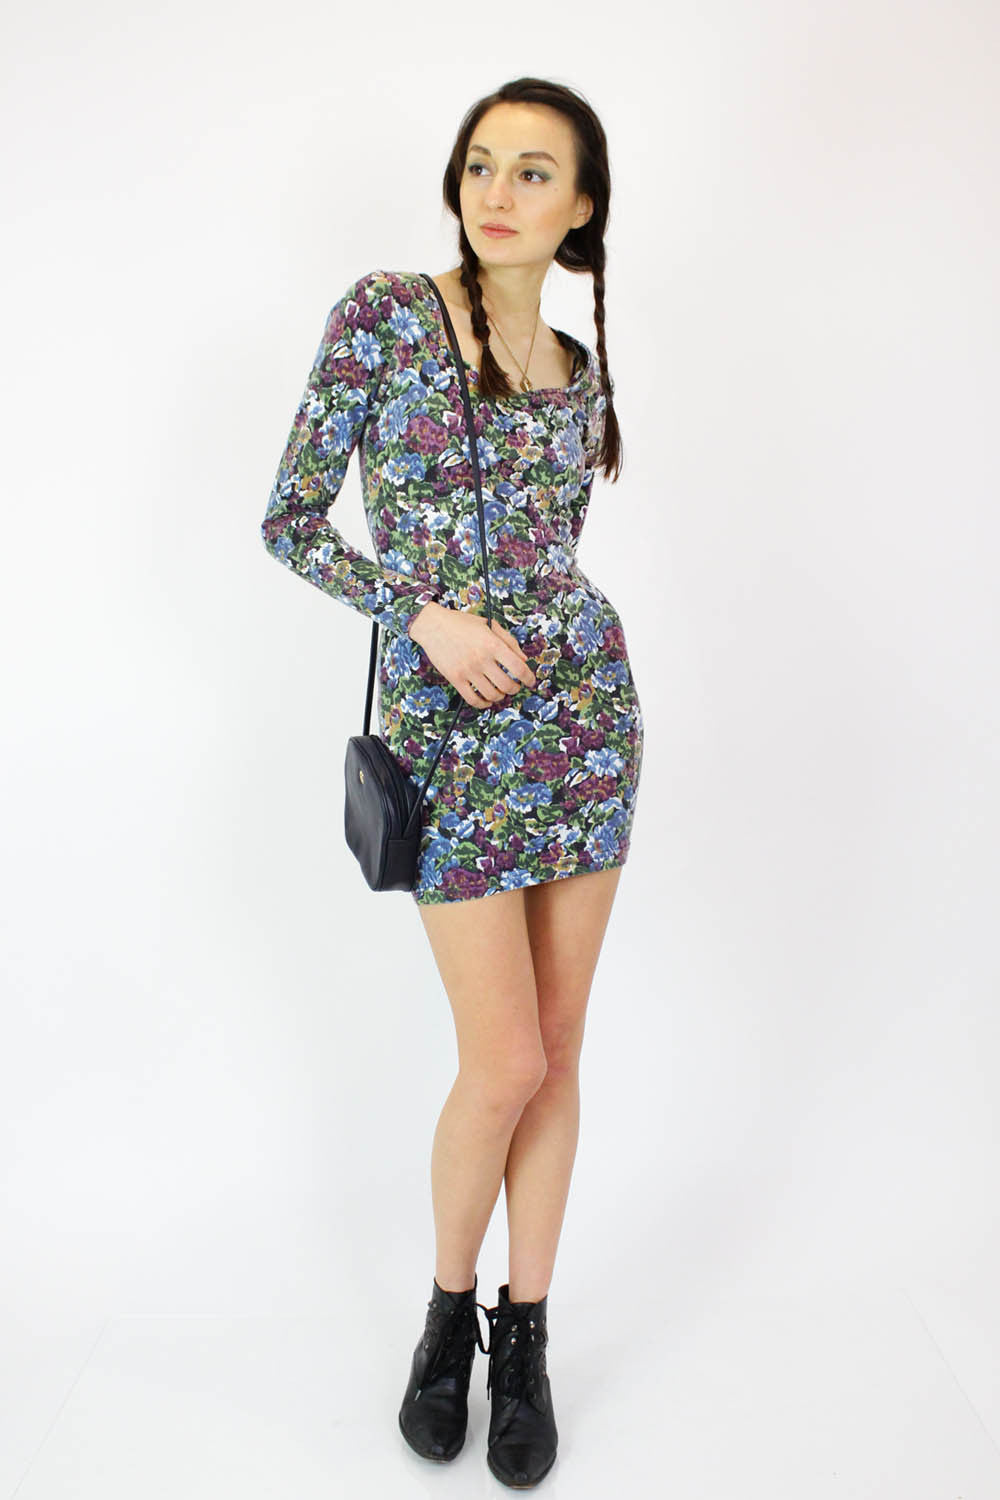 90s Floral Bodycon Mini Dress S